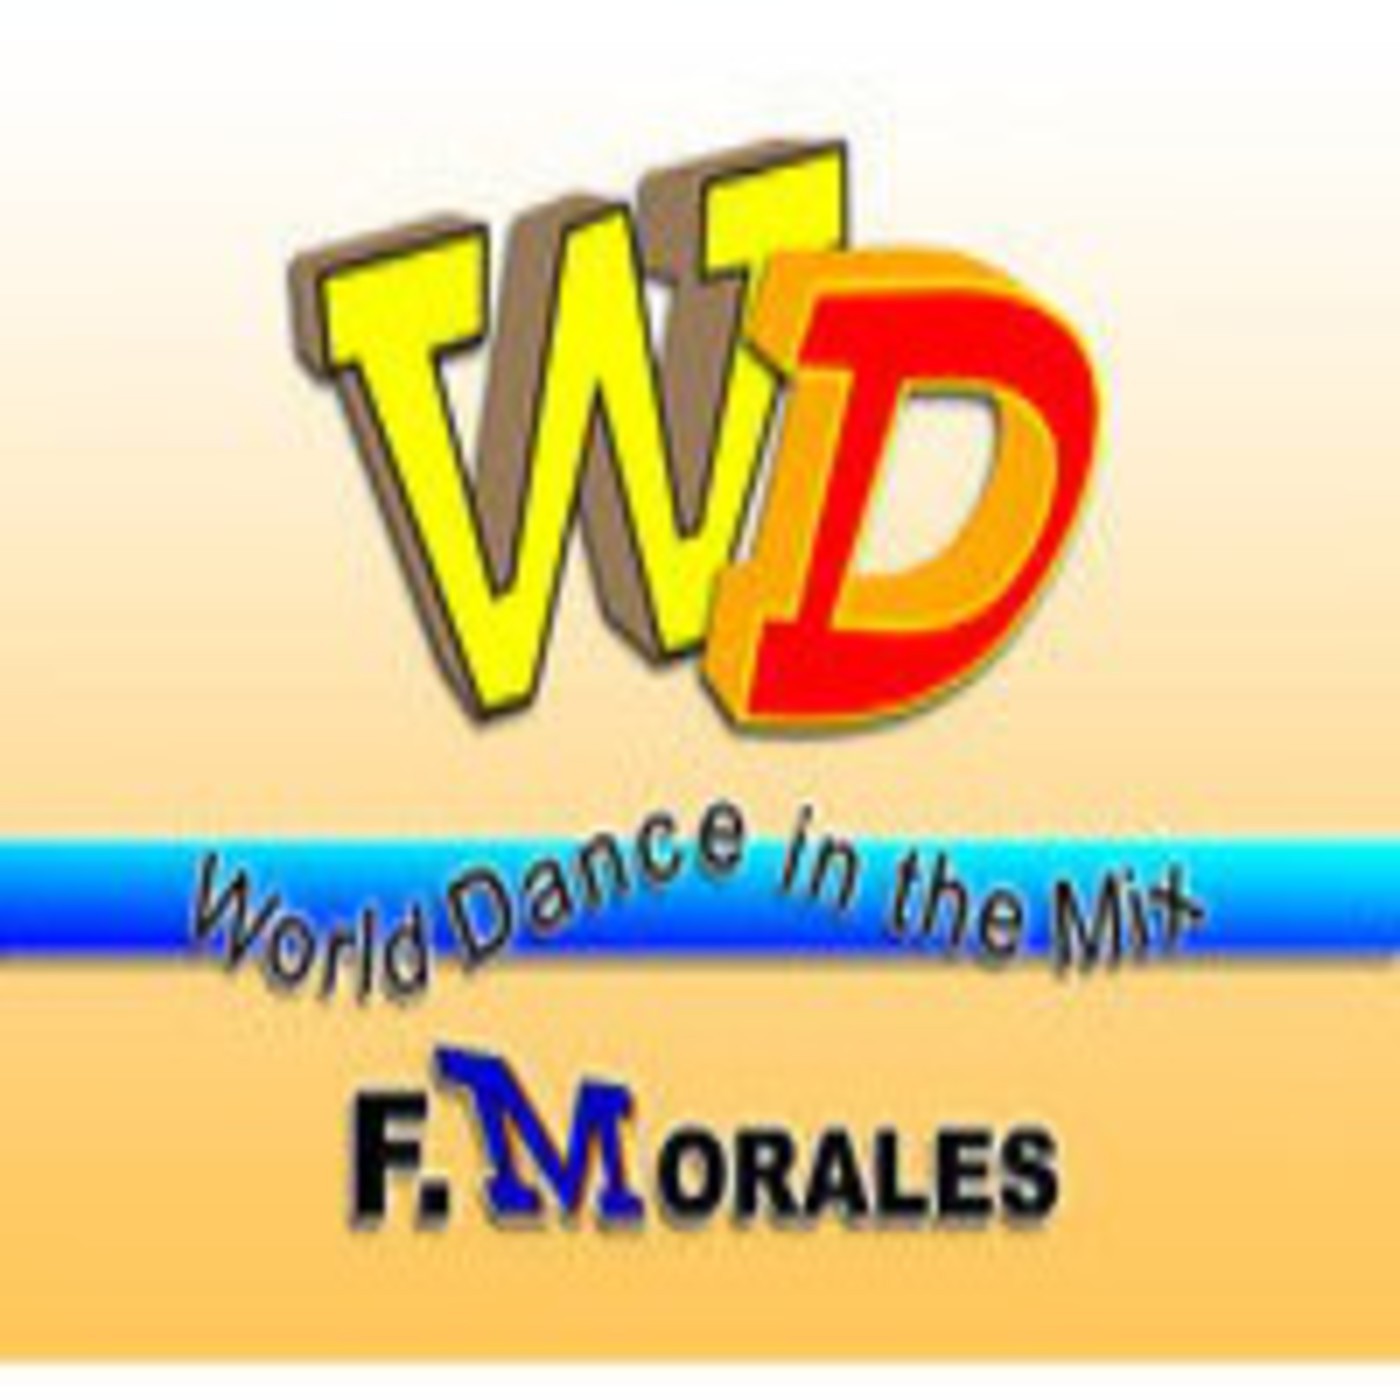 Los 80 hits house en world dance in the mix en for 80s house music hits